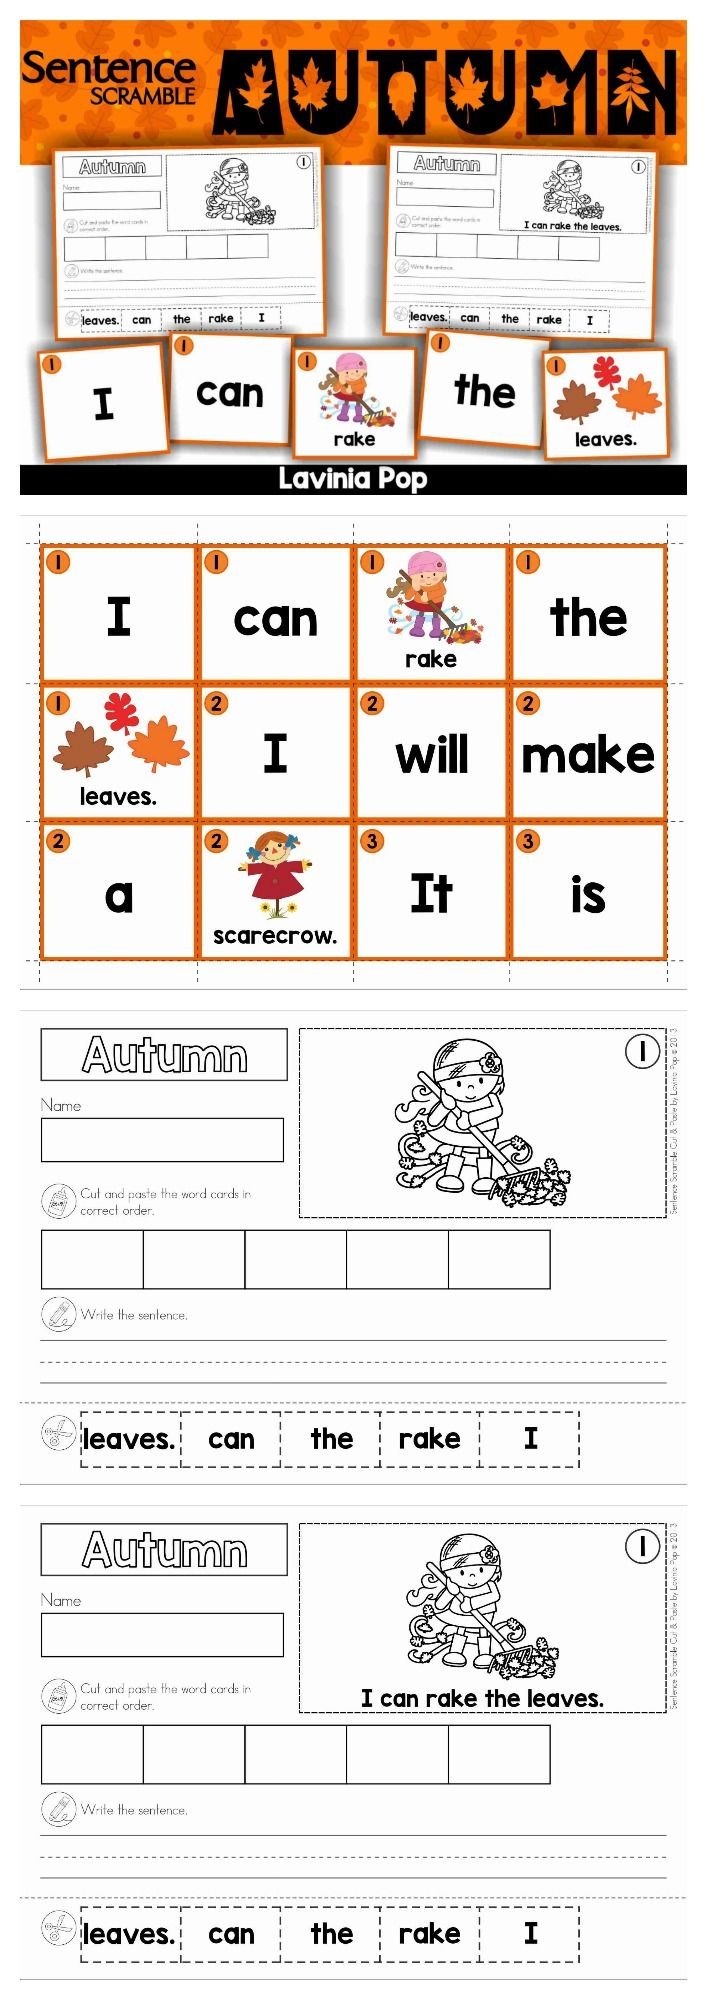 Free Worksheet Cut And Paste Sentence Worksheets autumn fall sentence scramble with cut and paste worksheets theme includes pocket chart center cards